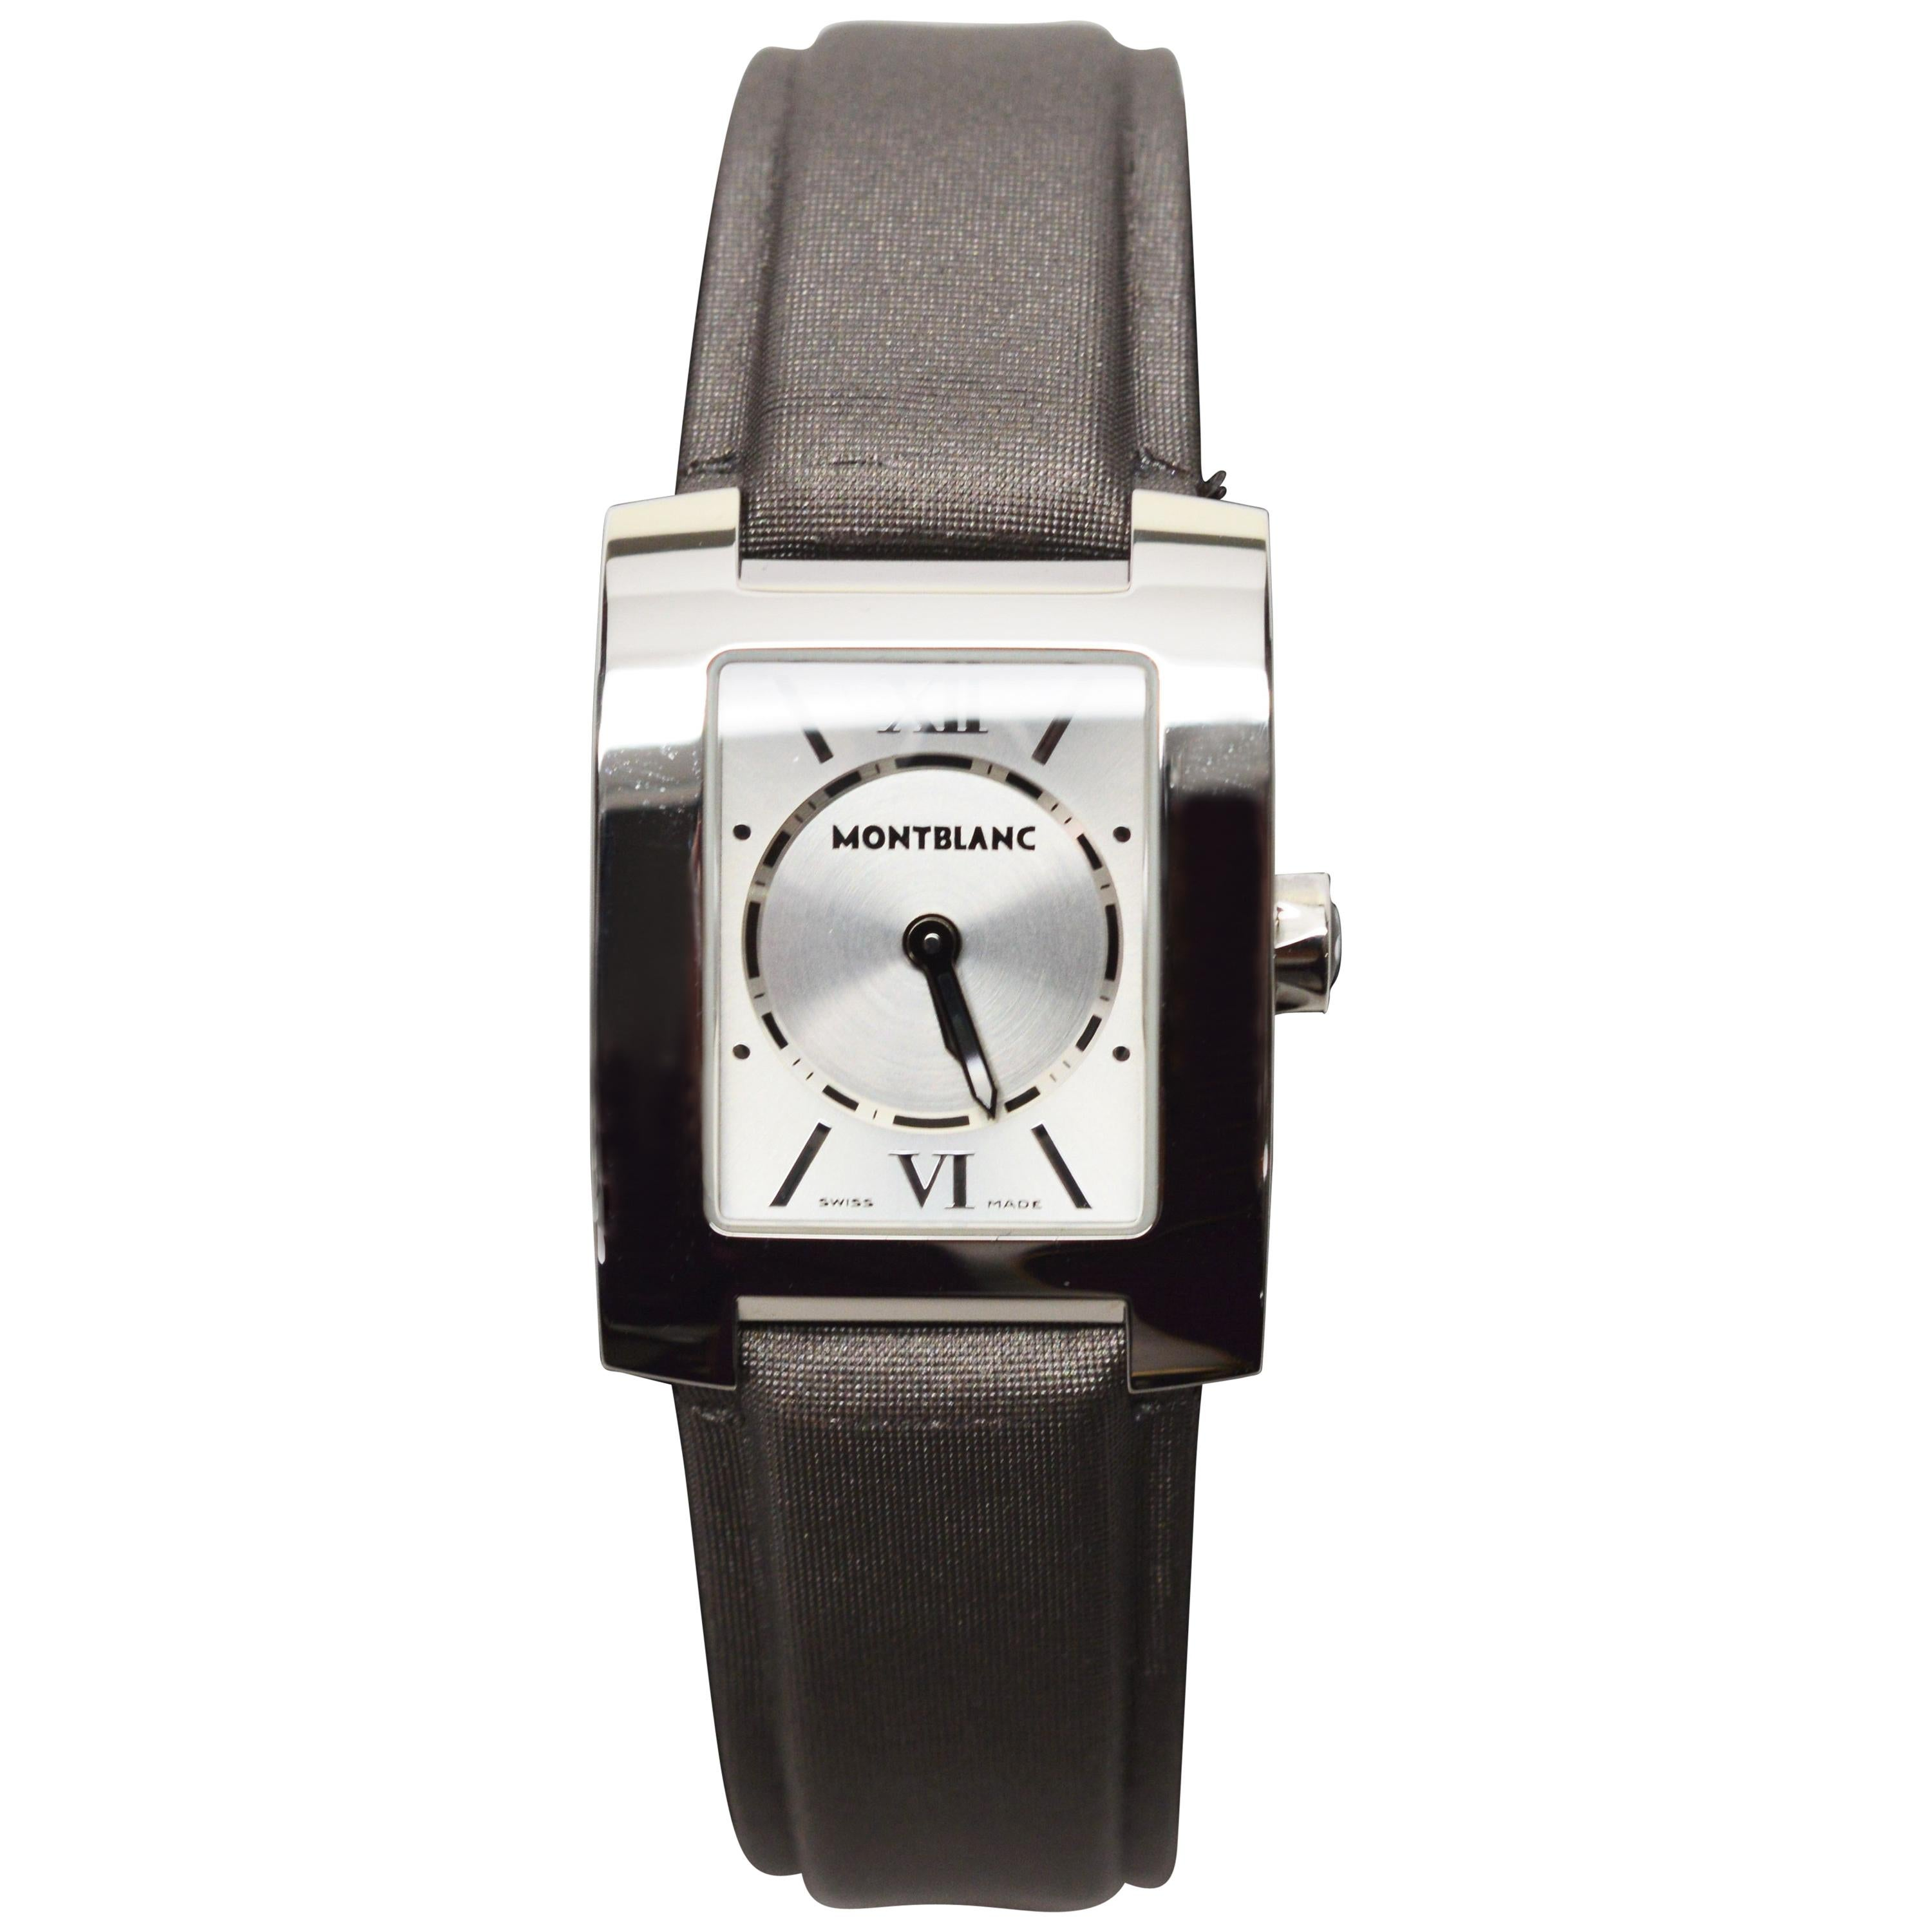 Womens Montblanc Stainless Steel Profile Wristwatch